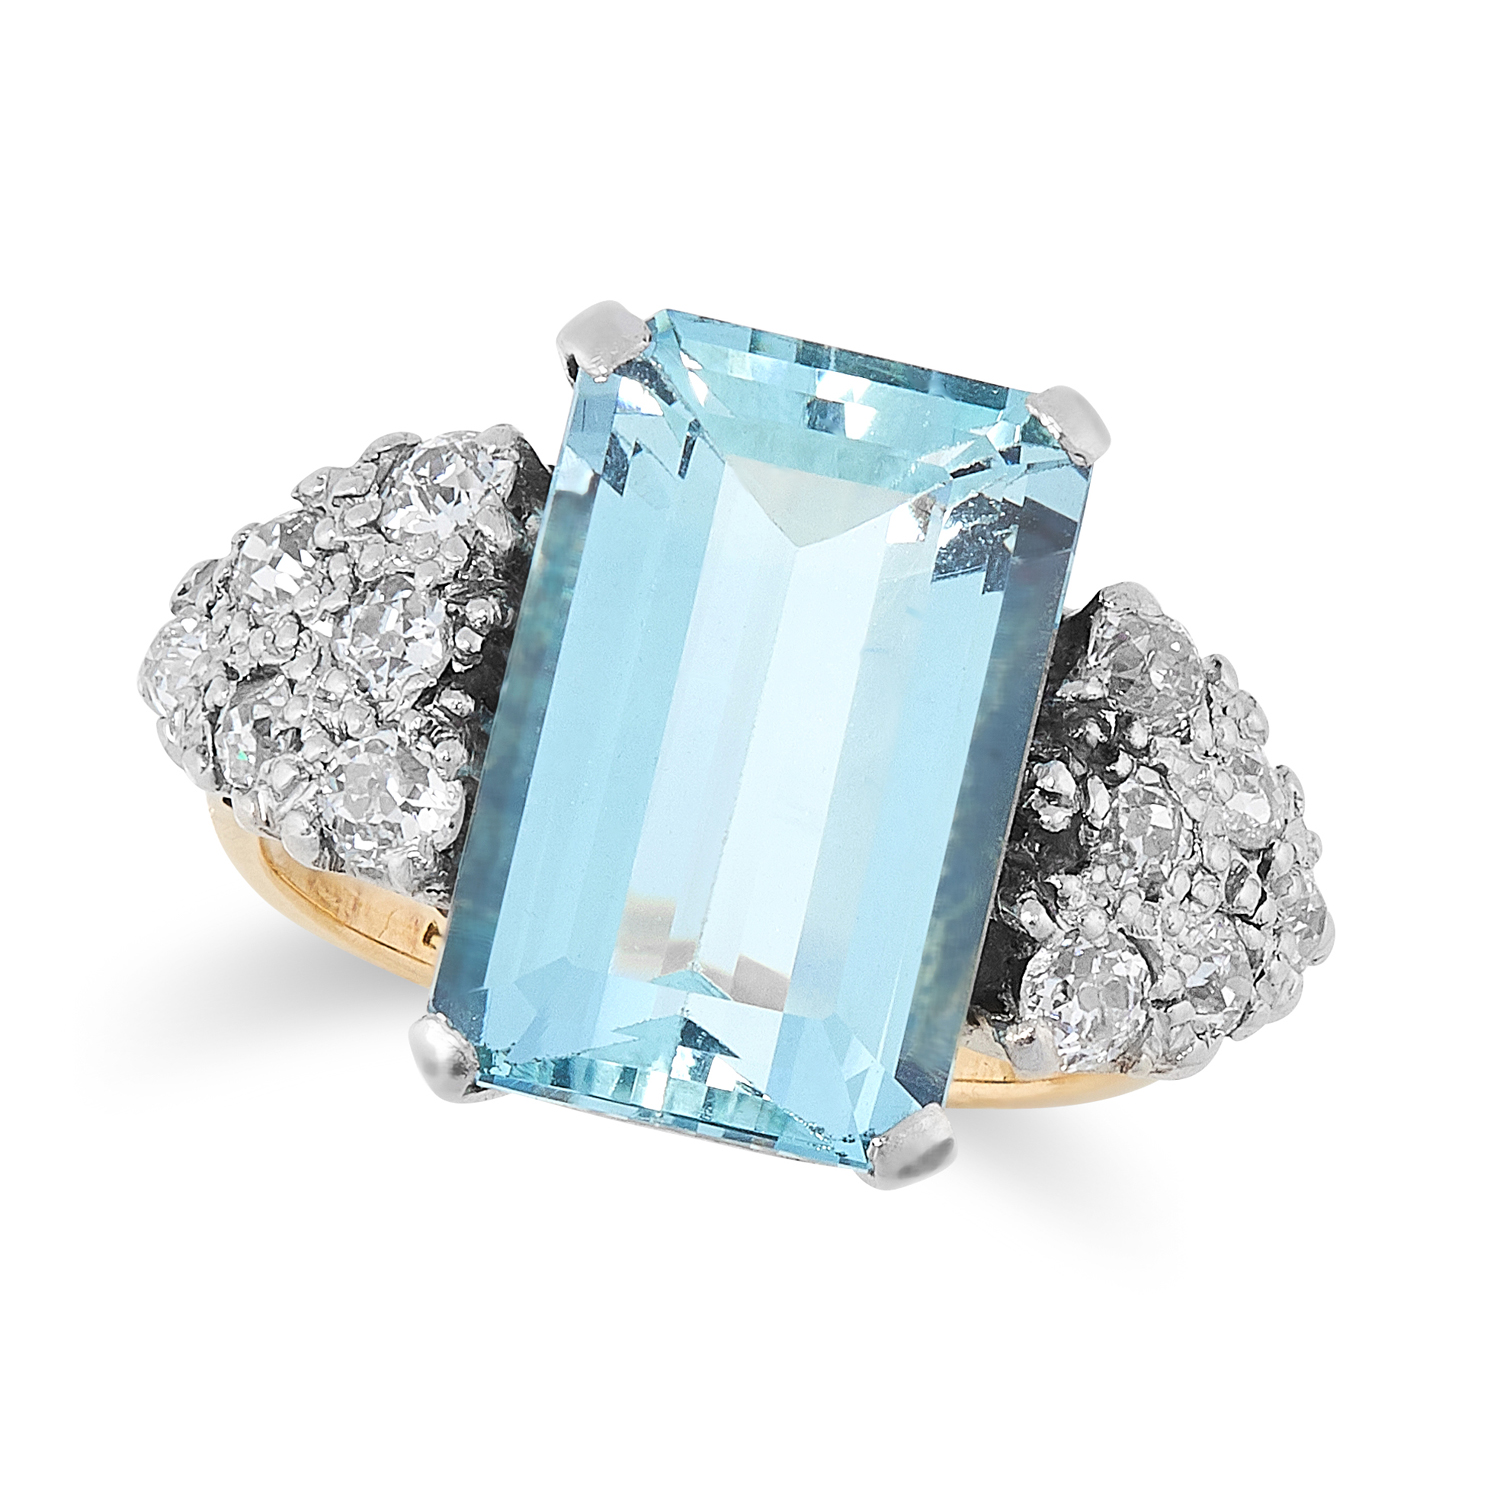 AN ART DECO AQUAMARINE AND DIAMOND RING in yellow gold, set with an emerald cut aquamarine of 5.00